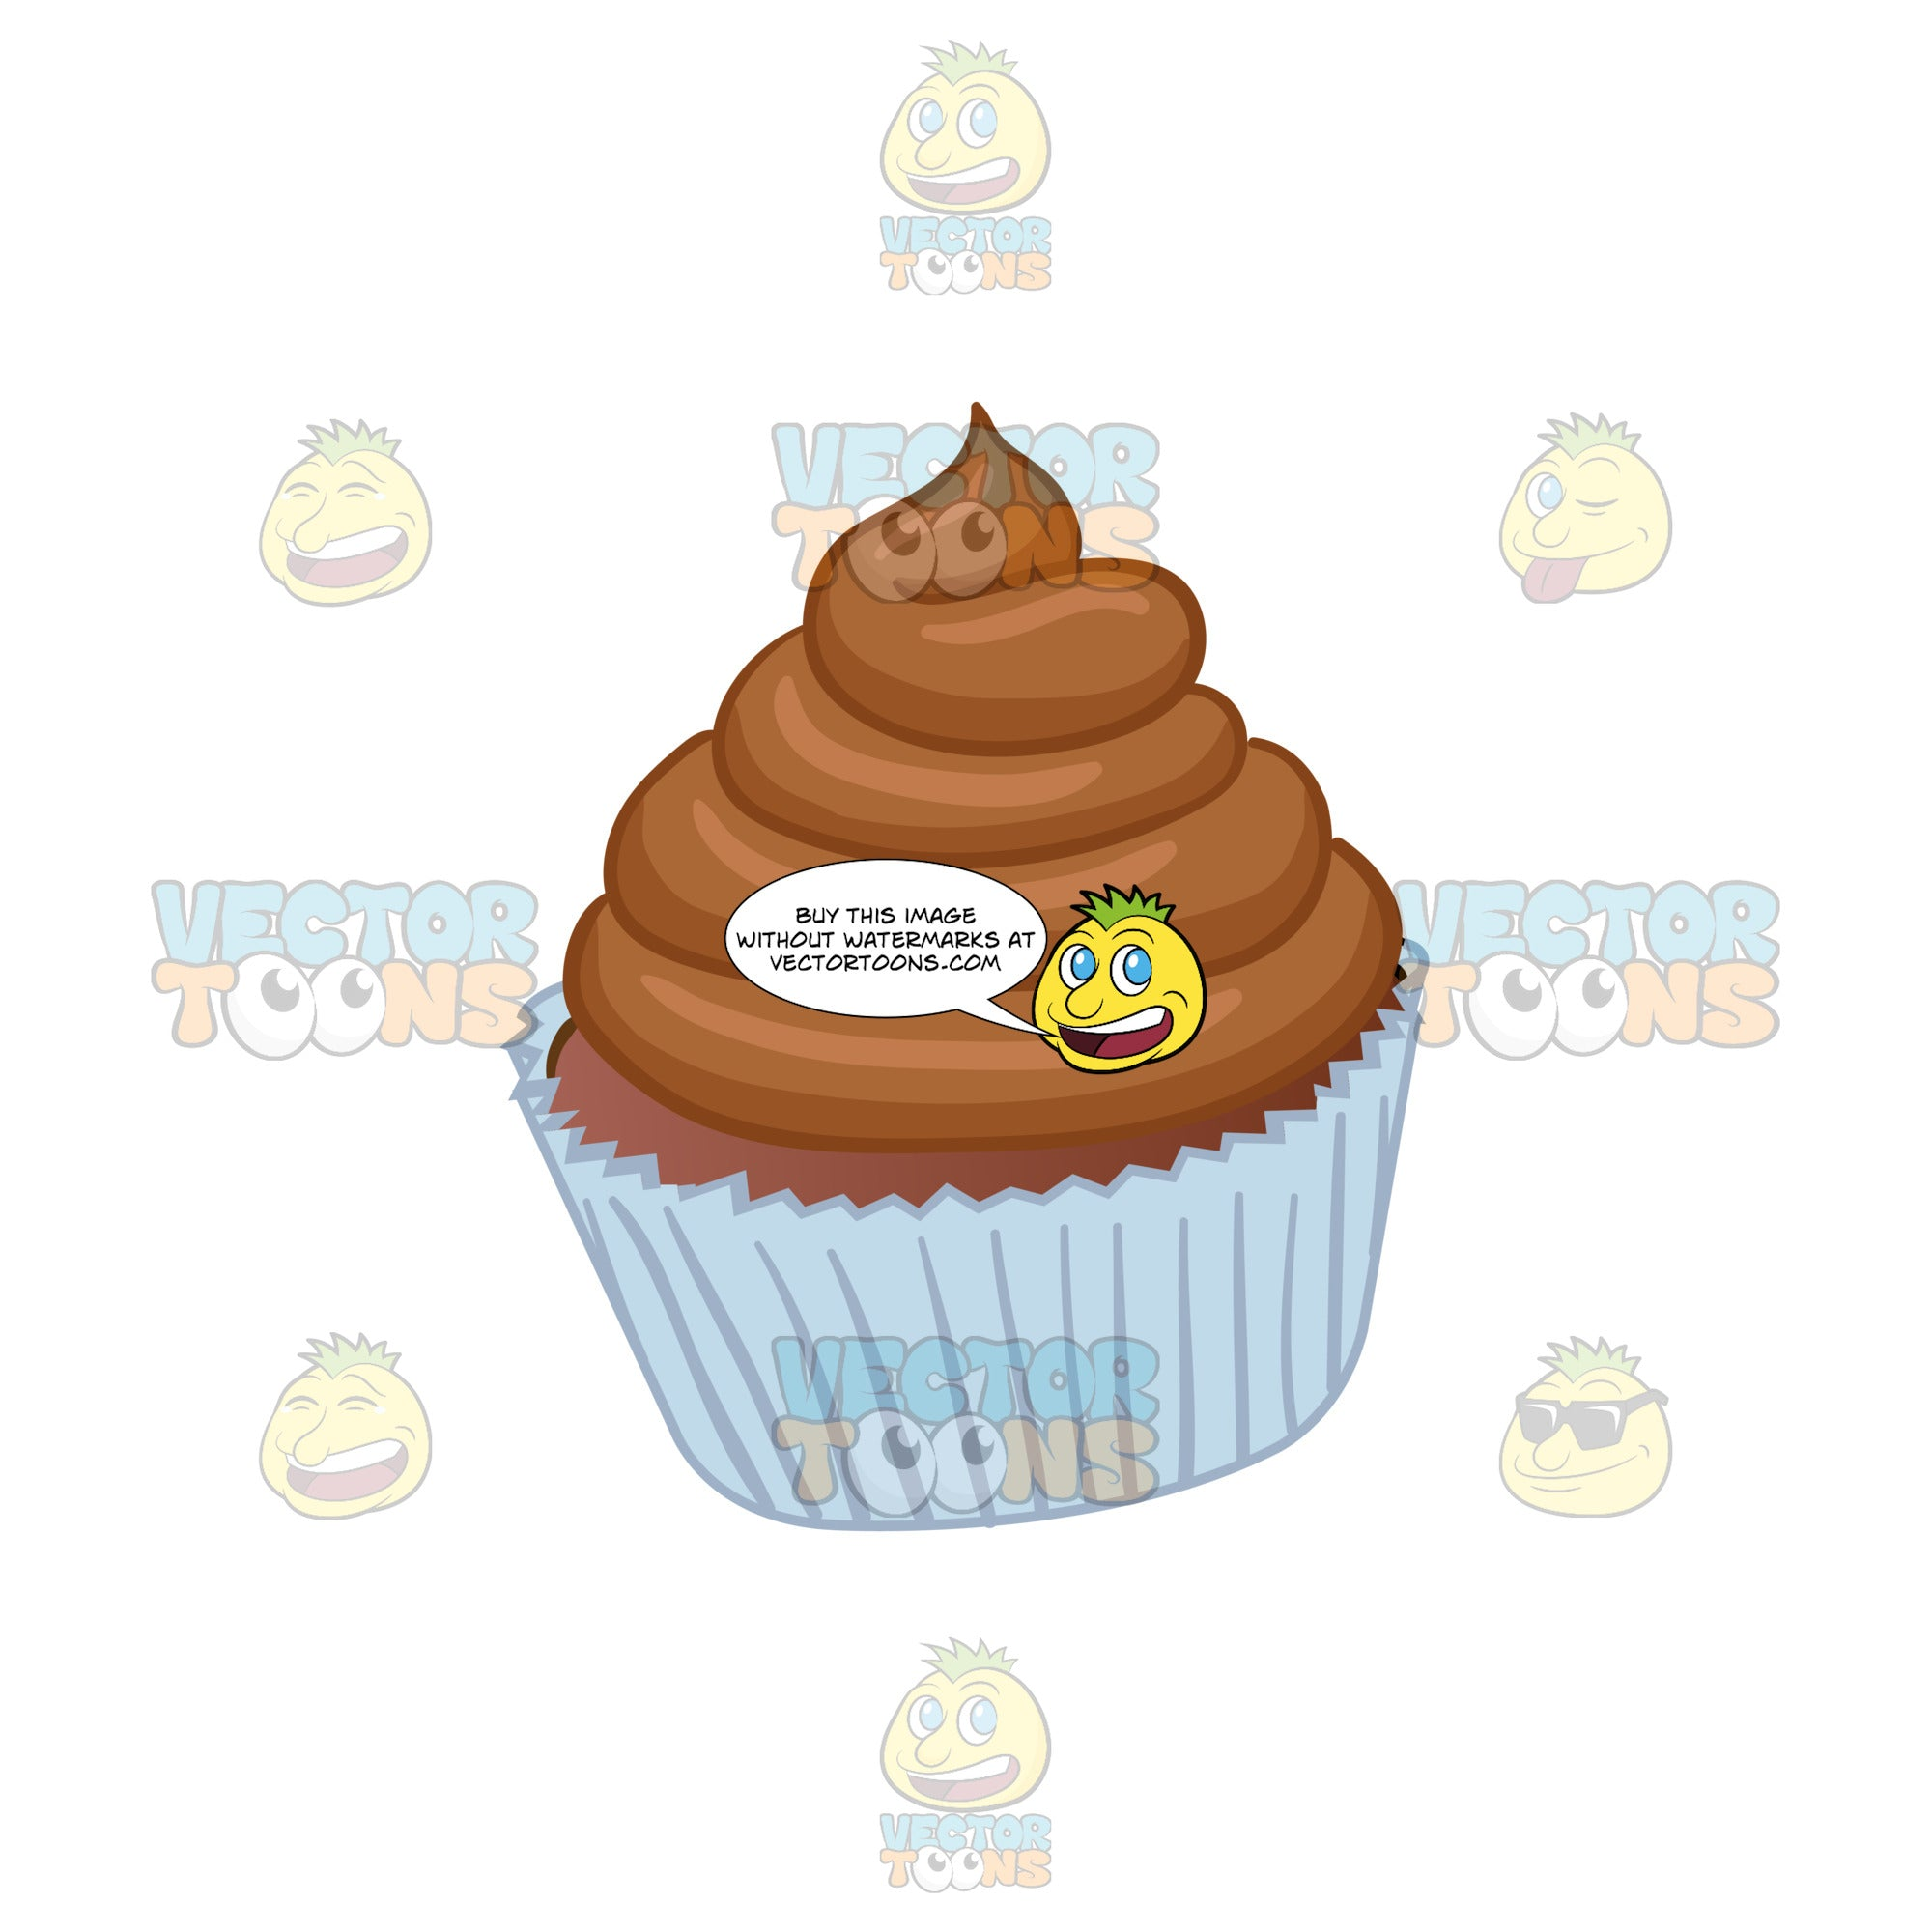 Cupcake With Brown Swirled Frosting